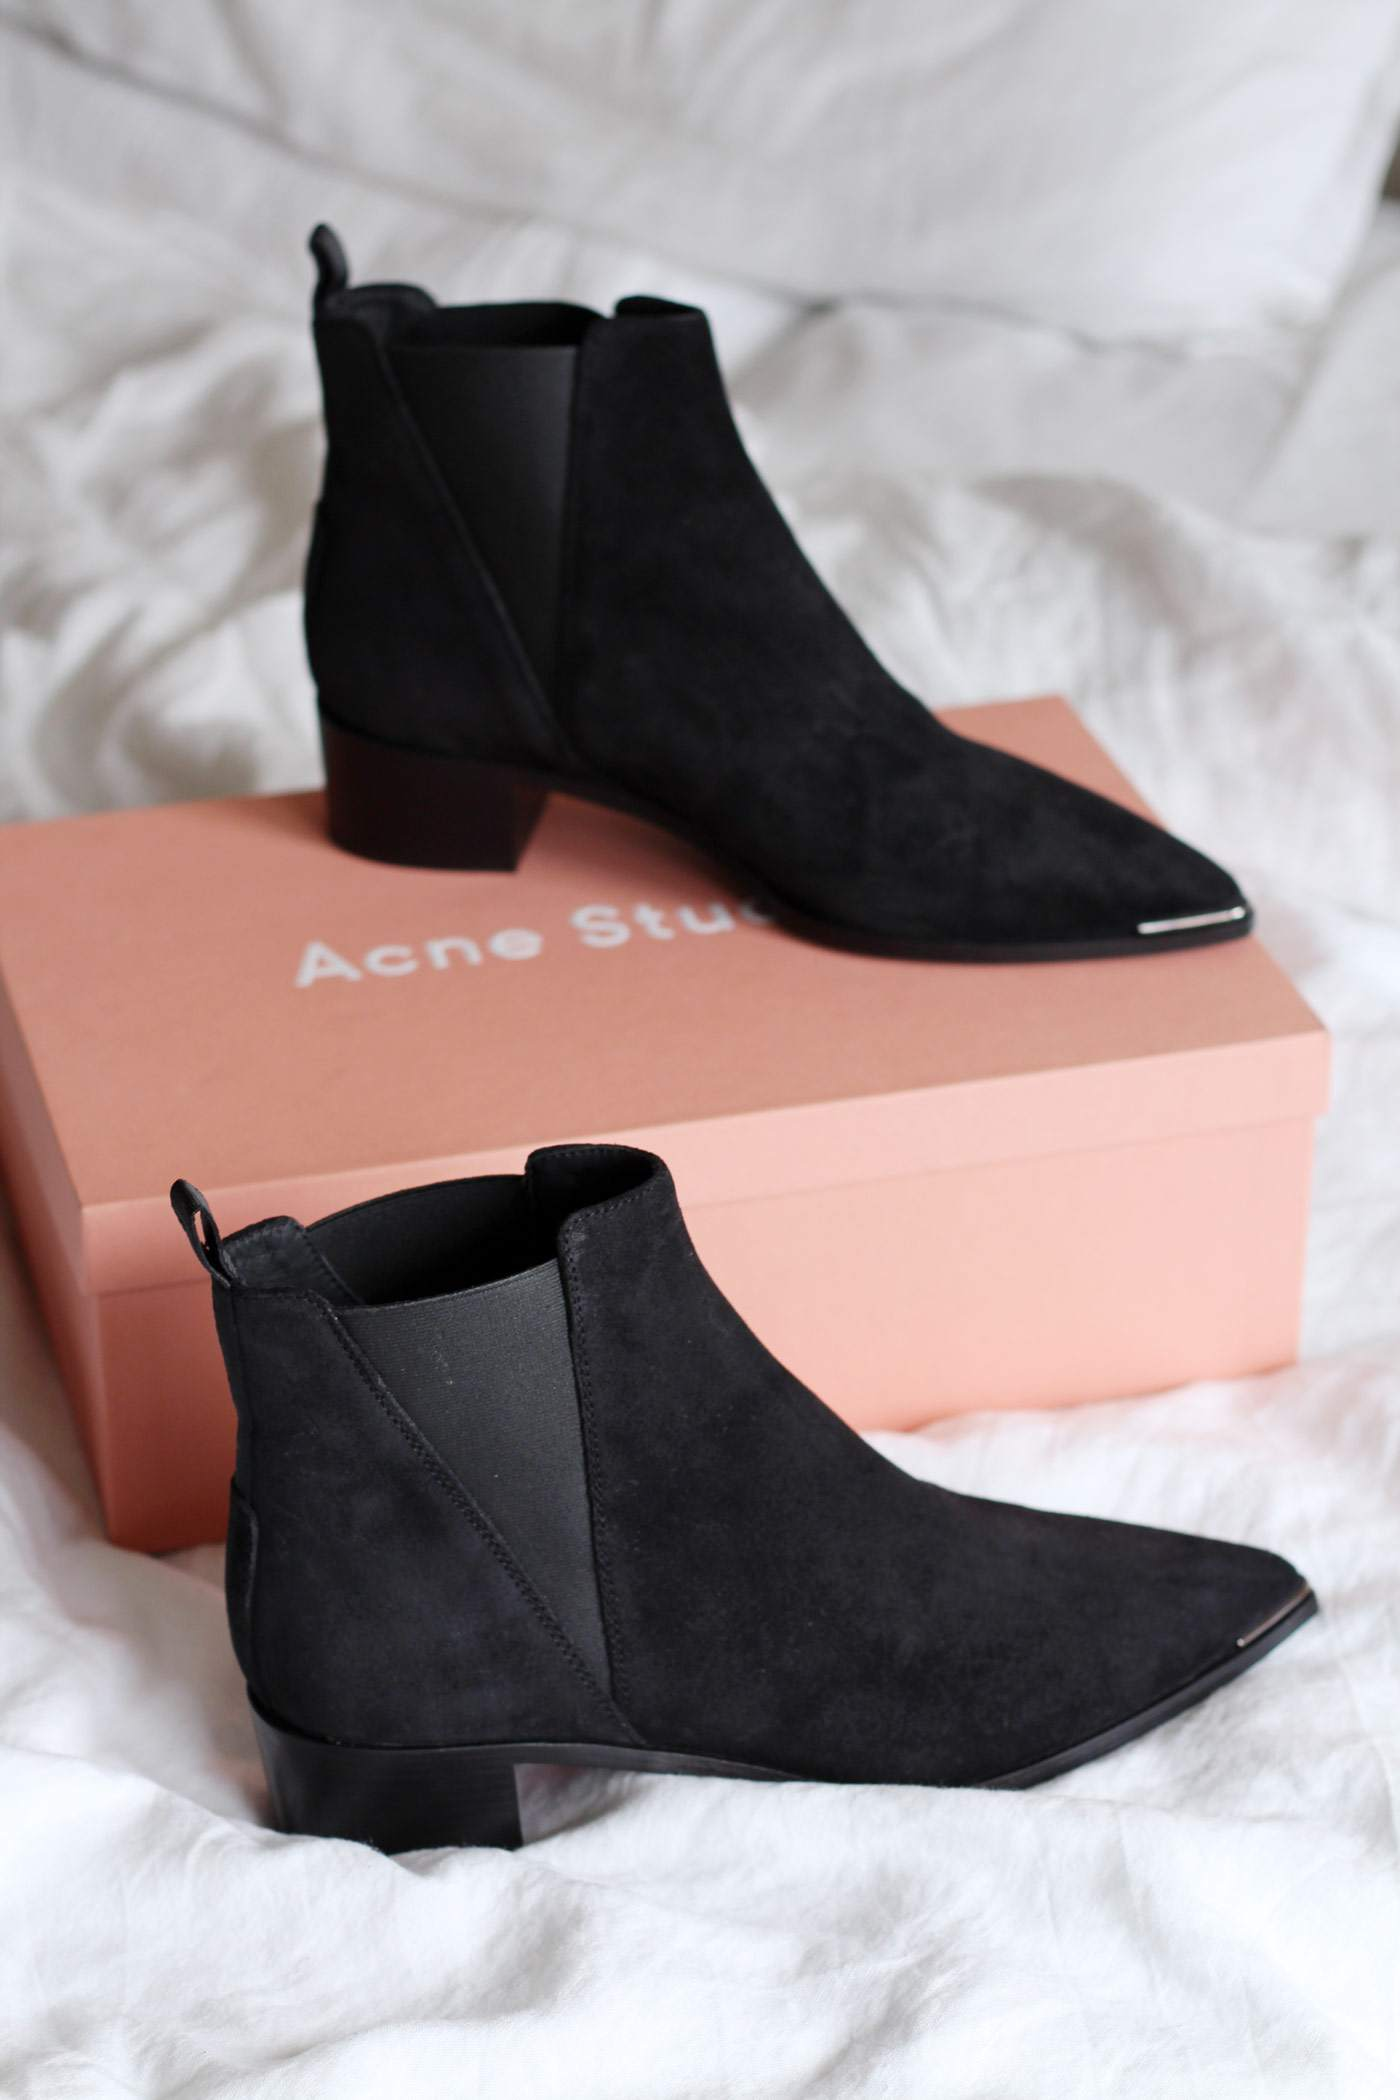 These Boots from Zara… I'Ve Already Seen Them before